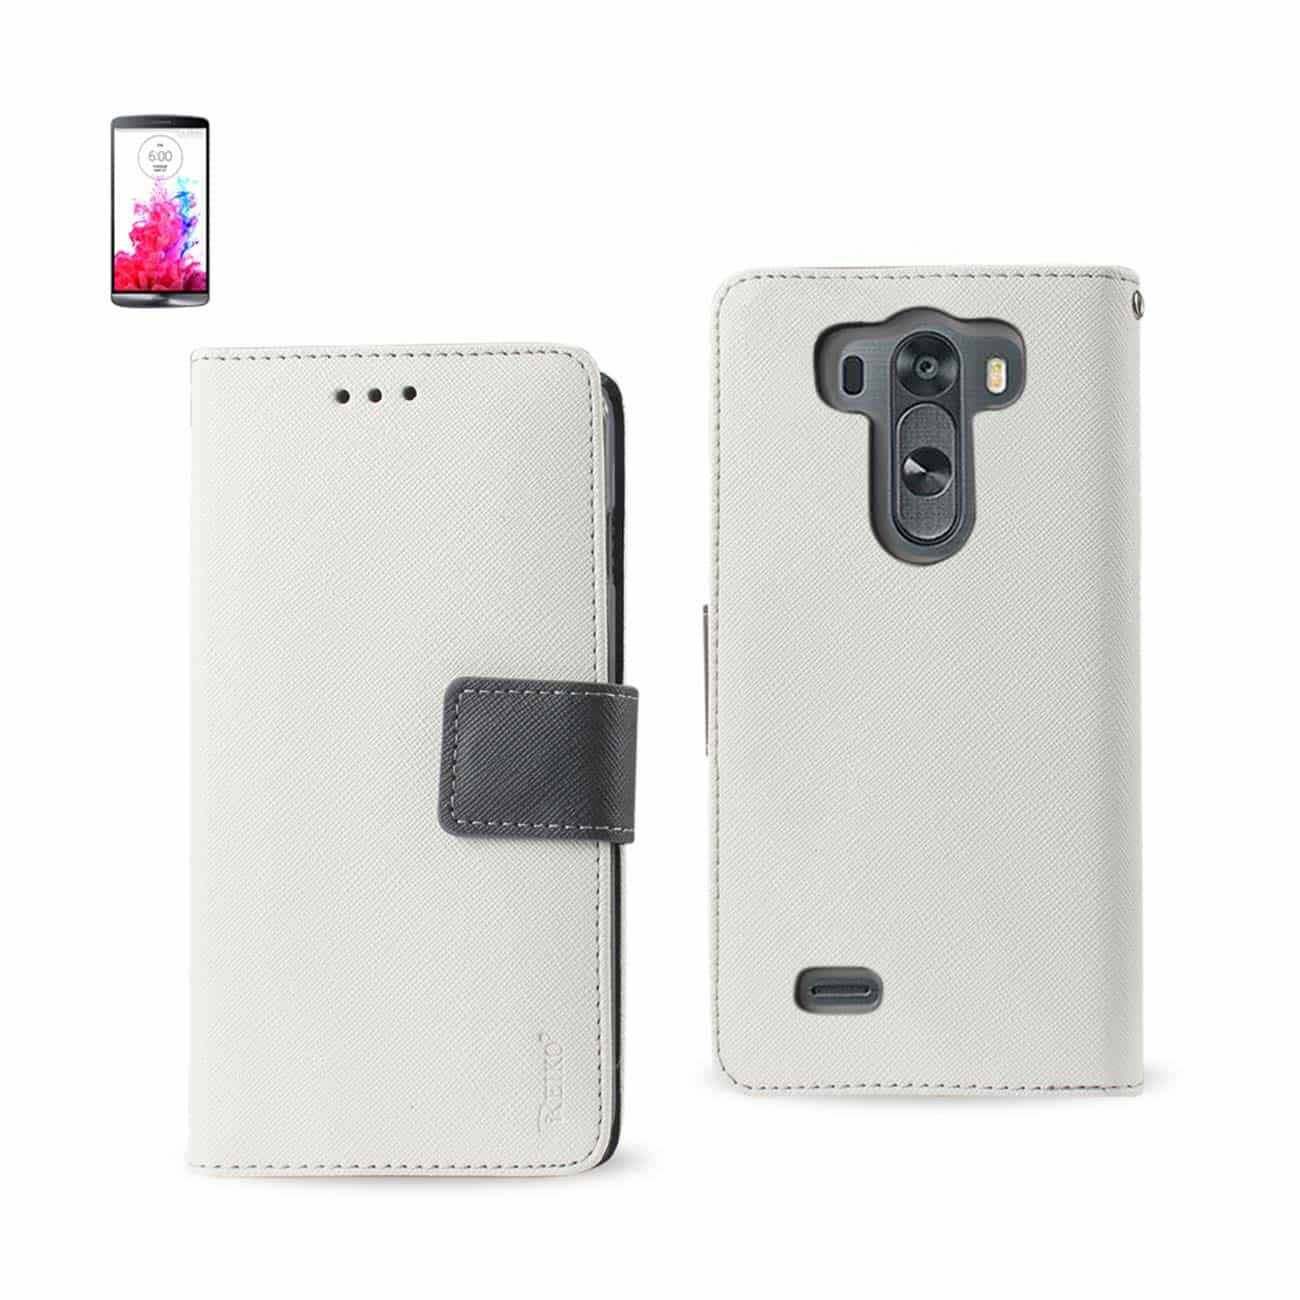 LG G3 MINI 3-IN-1 WALLET CASE IN WHITE